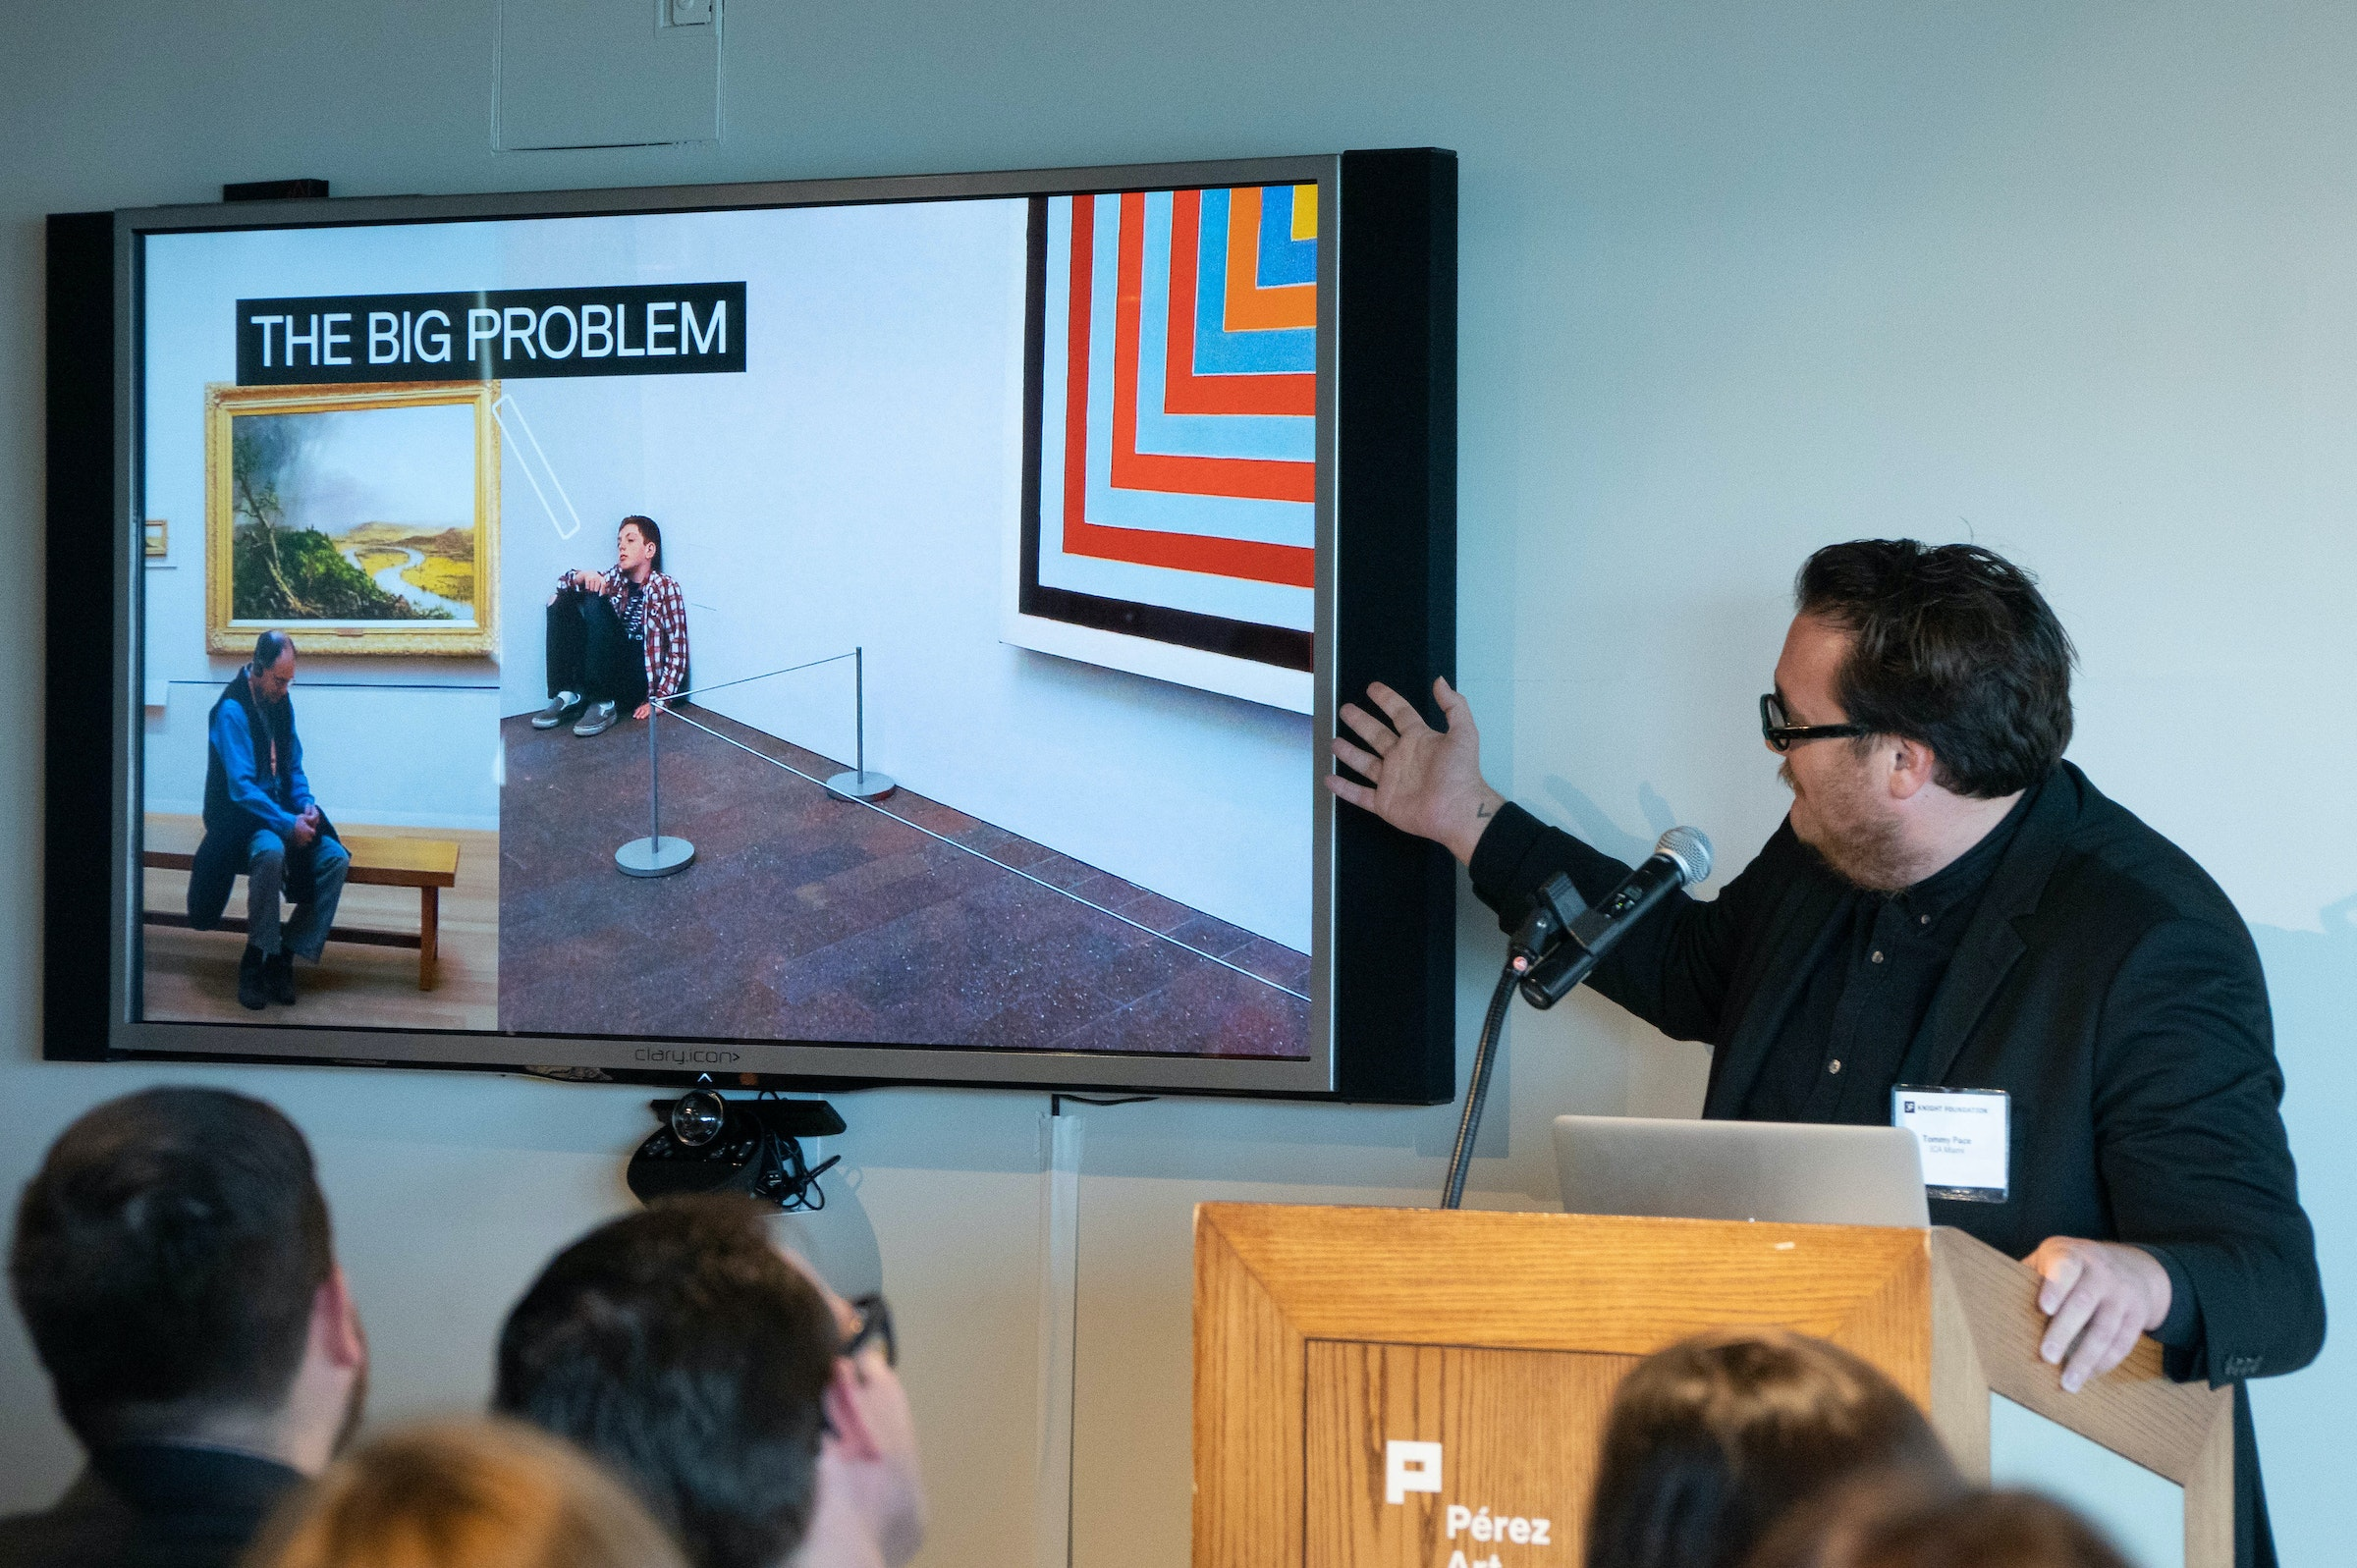 <p><em>Tommy Pace, from the ICA Miami, during his presentation as part of Arts and Technology exploration of new ways to connect people to art, at the Perez Art Museum Miami.<br>(PHOTO BY ANGELVALENTIN/FREELANCE)</em></p>